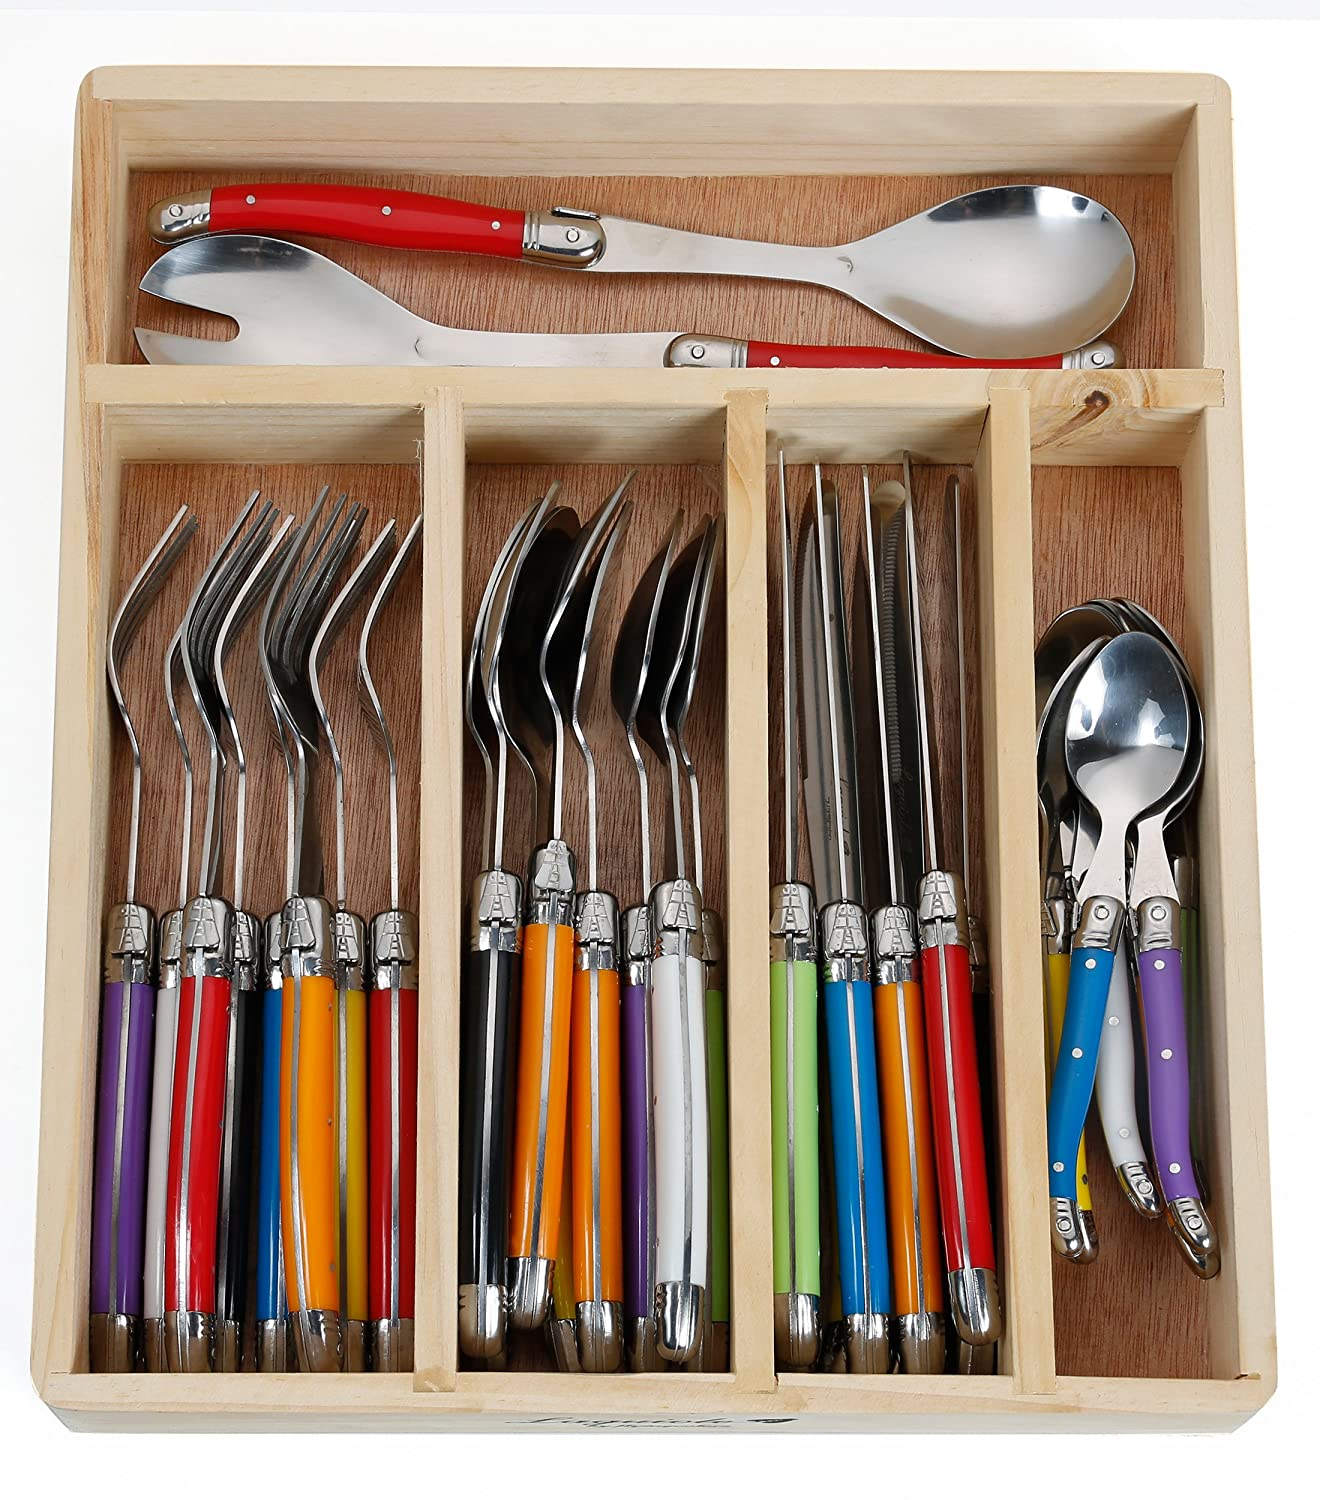 Amazon.com | FlyingColors Laguiole Stainless Steel Flatware Set. Multicolor  Handles, Wooden Storage Box, 34 Pieces: Flatware Sets